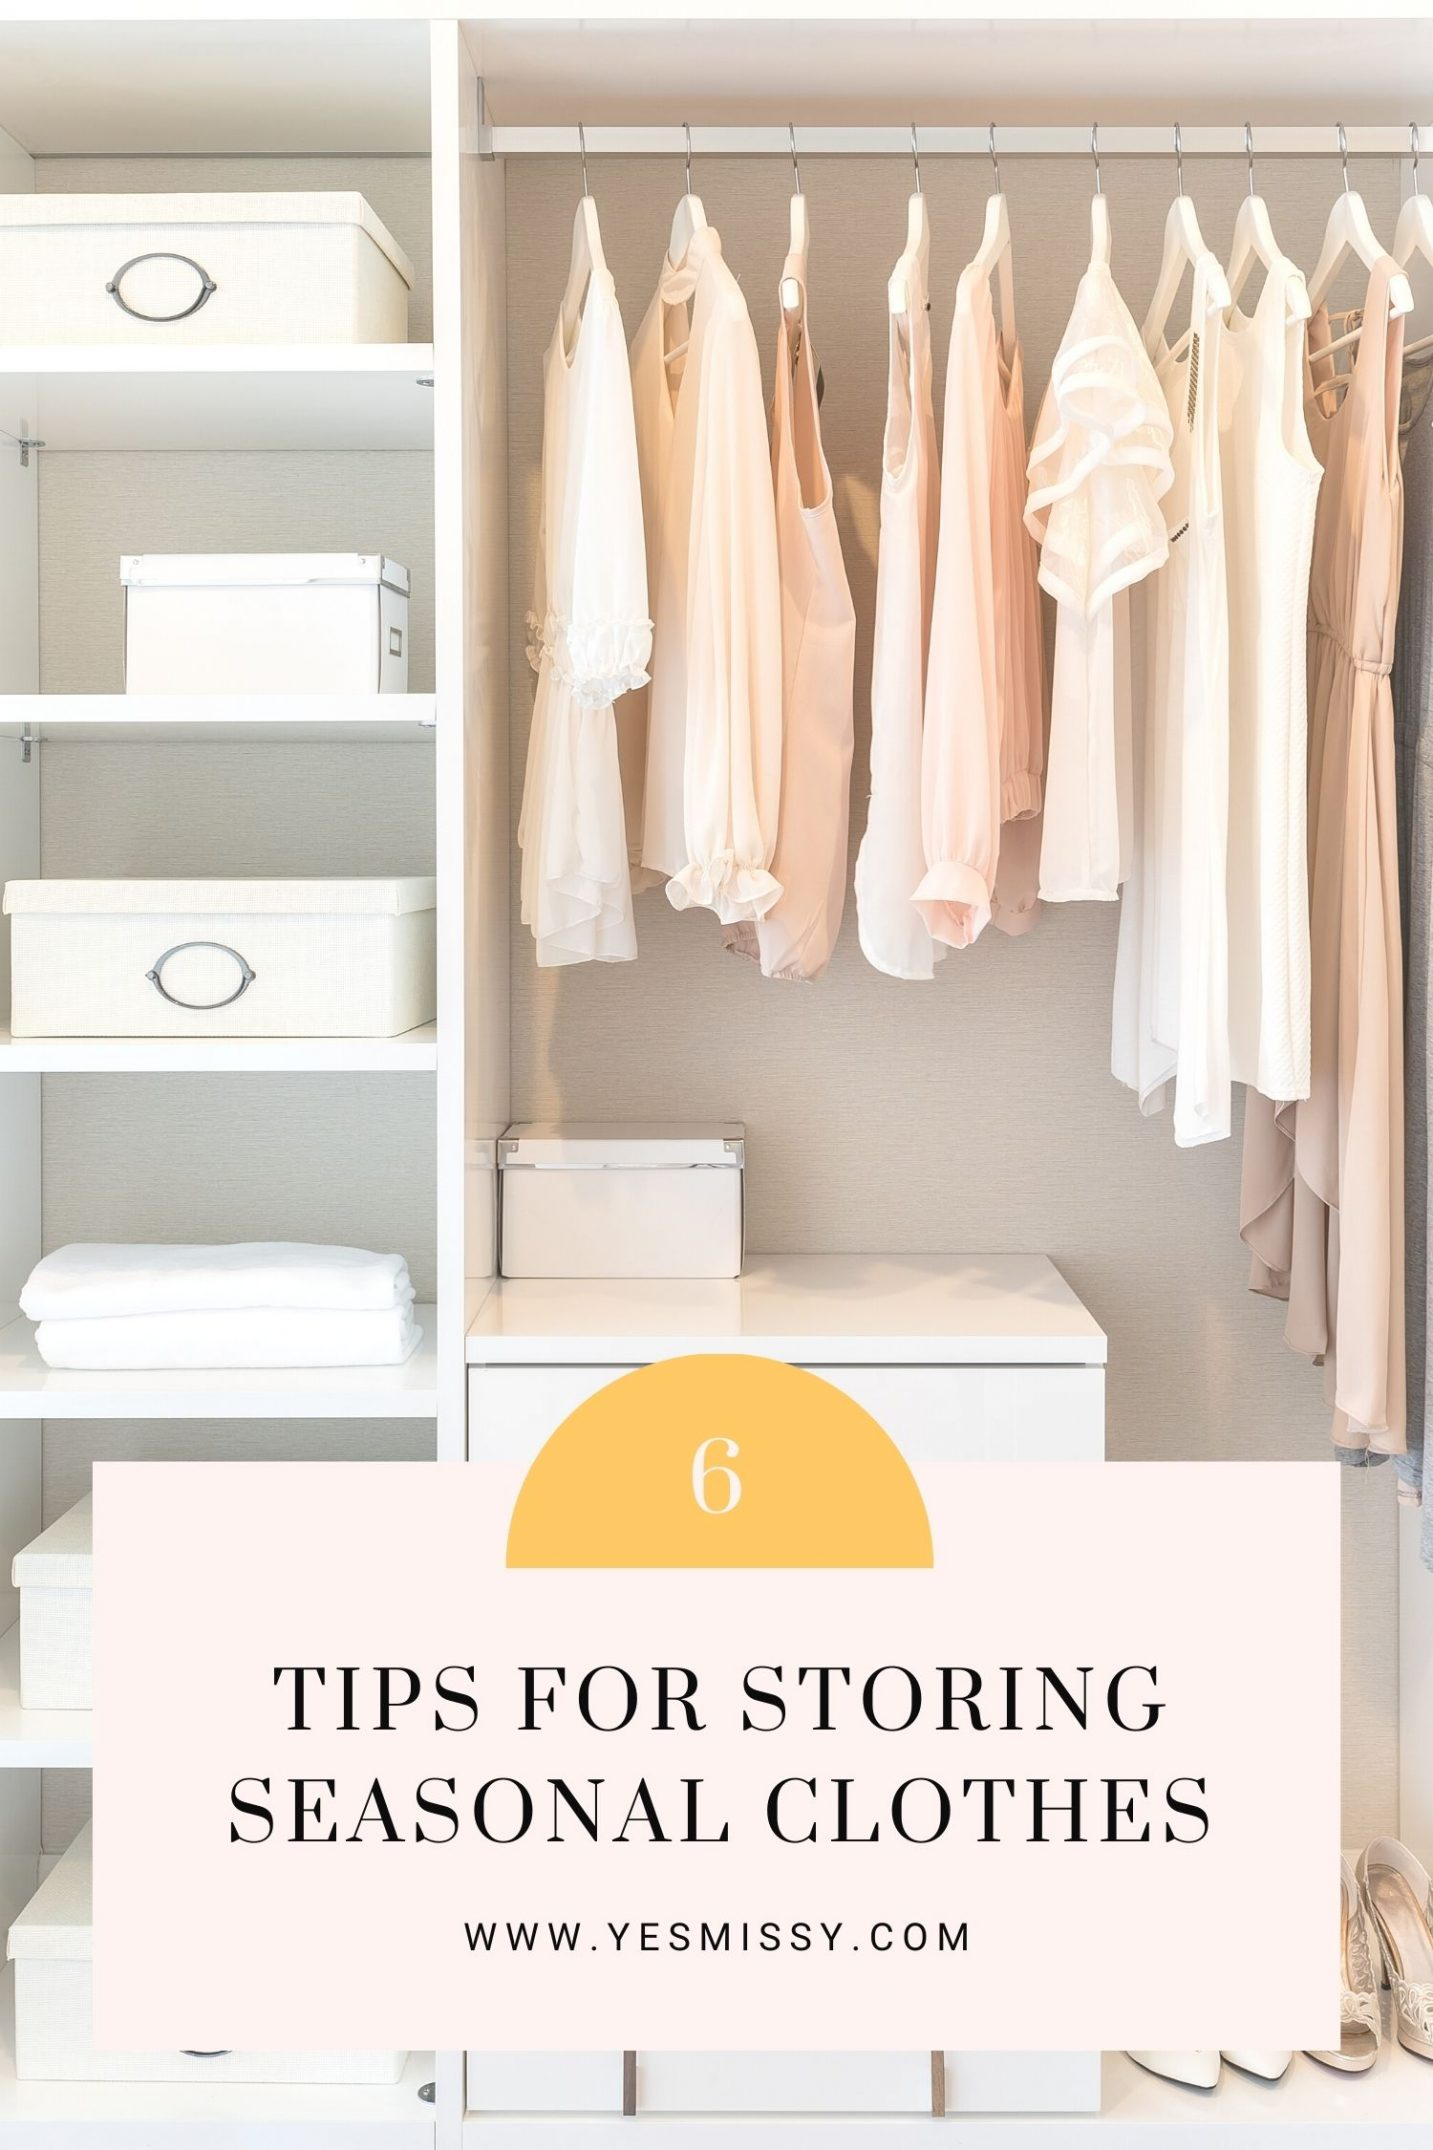 Declutter your closet by putting away seasonal clothes you're not wearing. Follow these 6 tips to store your clothes that are off-season for a more organized closet. More on yesmissy.com